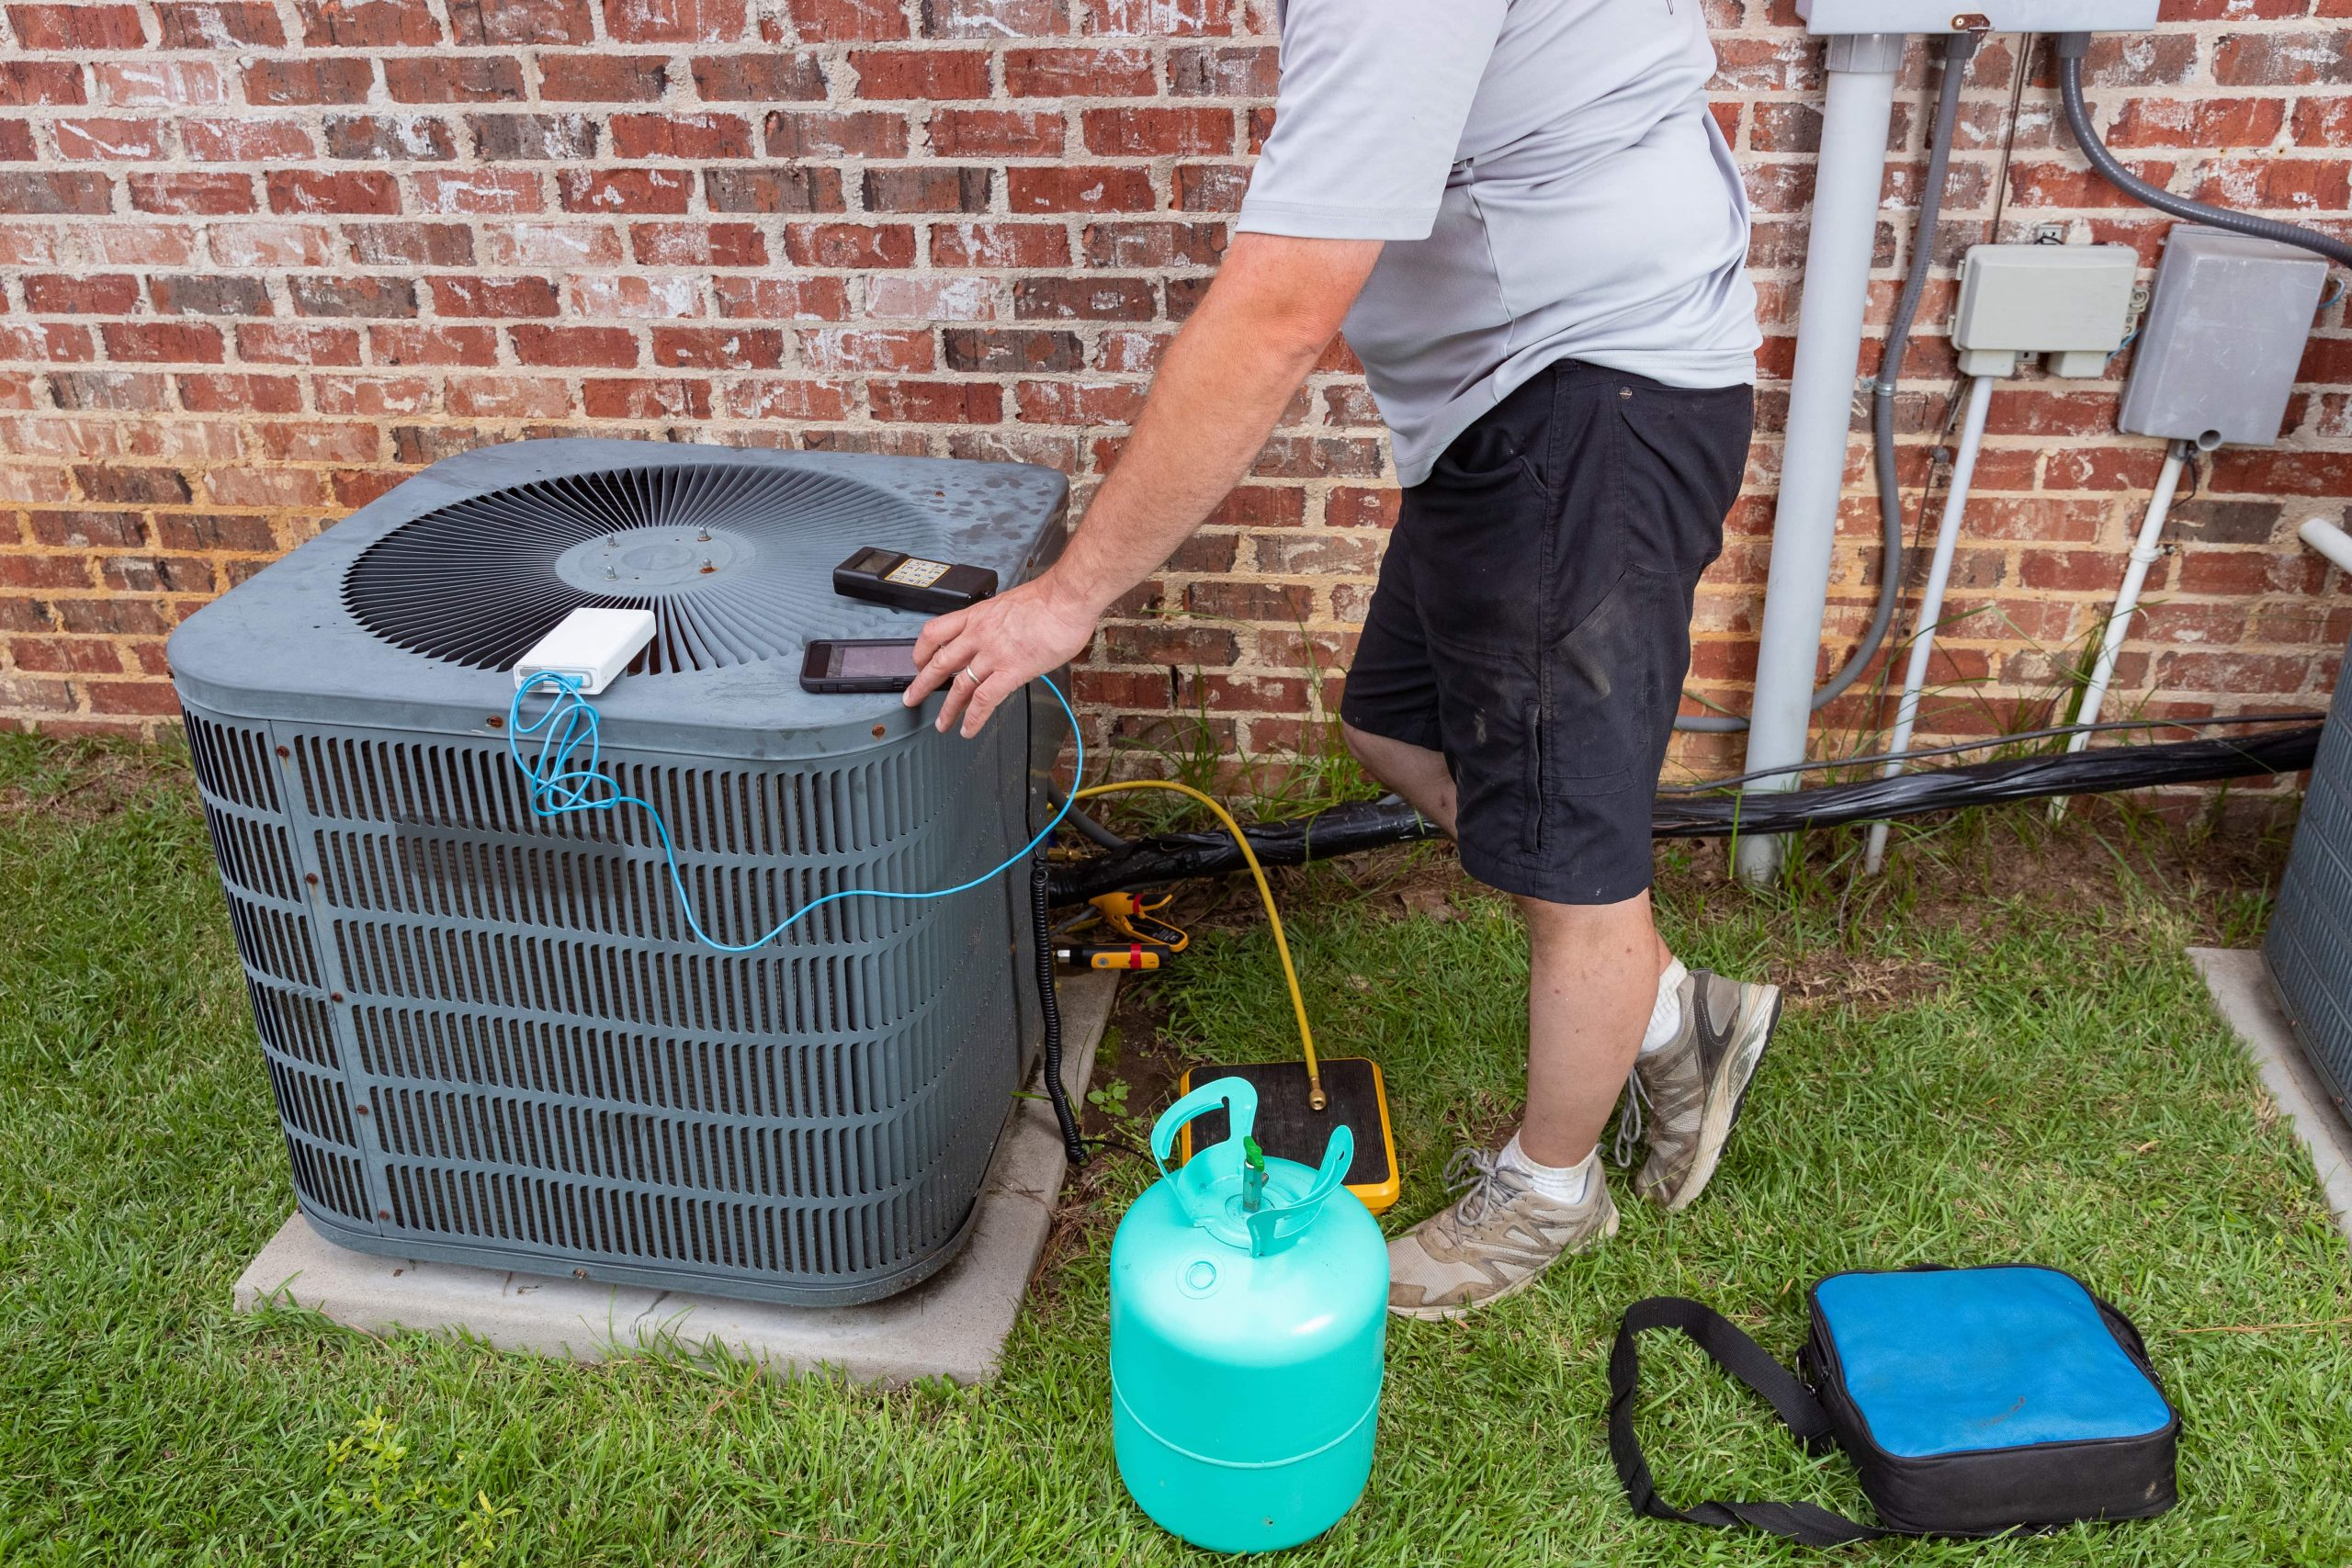 st louis heating and cooling